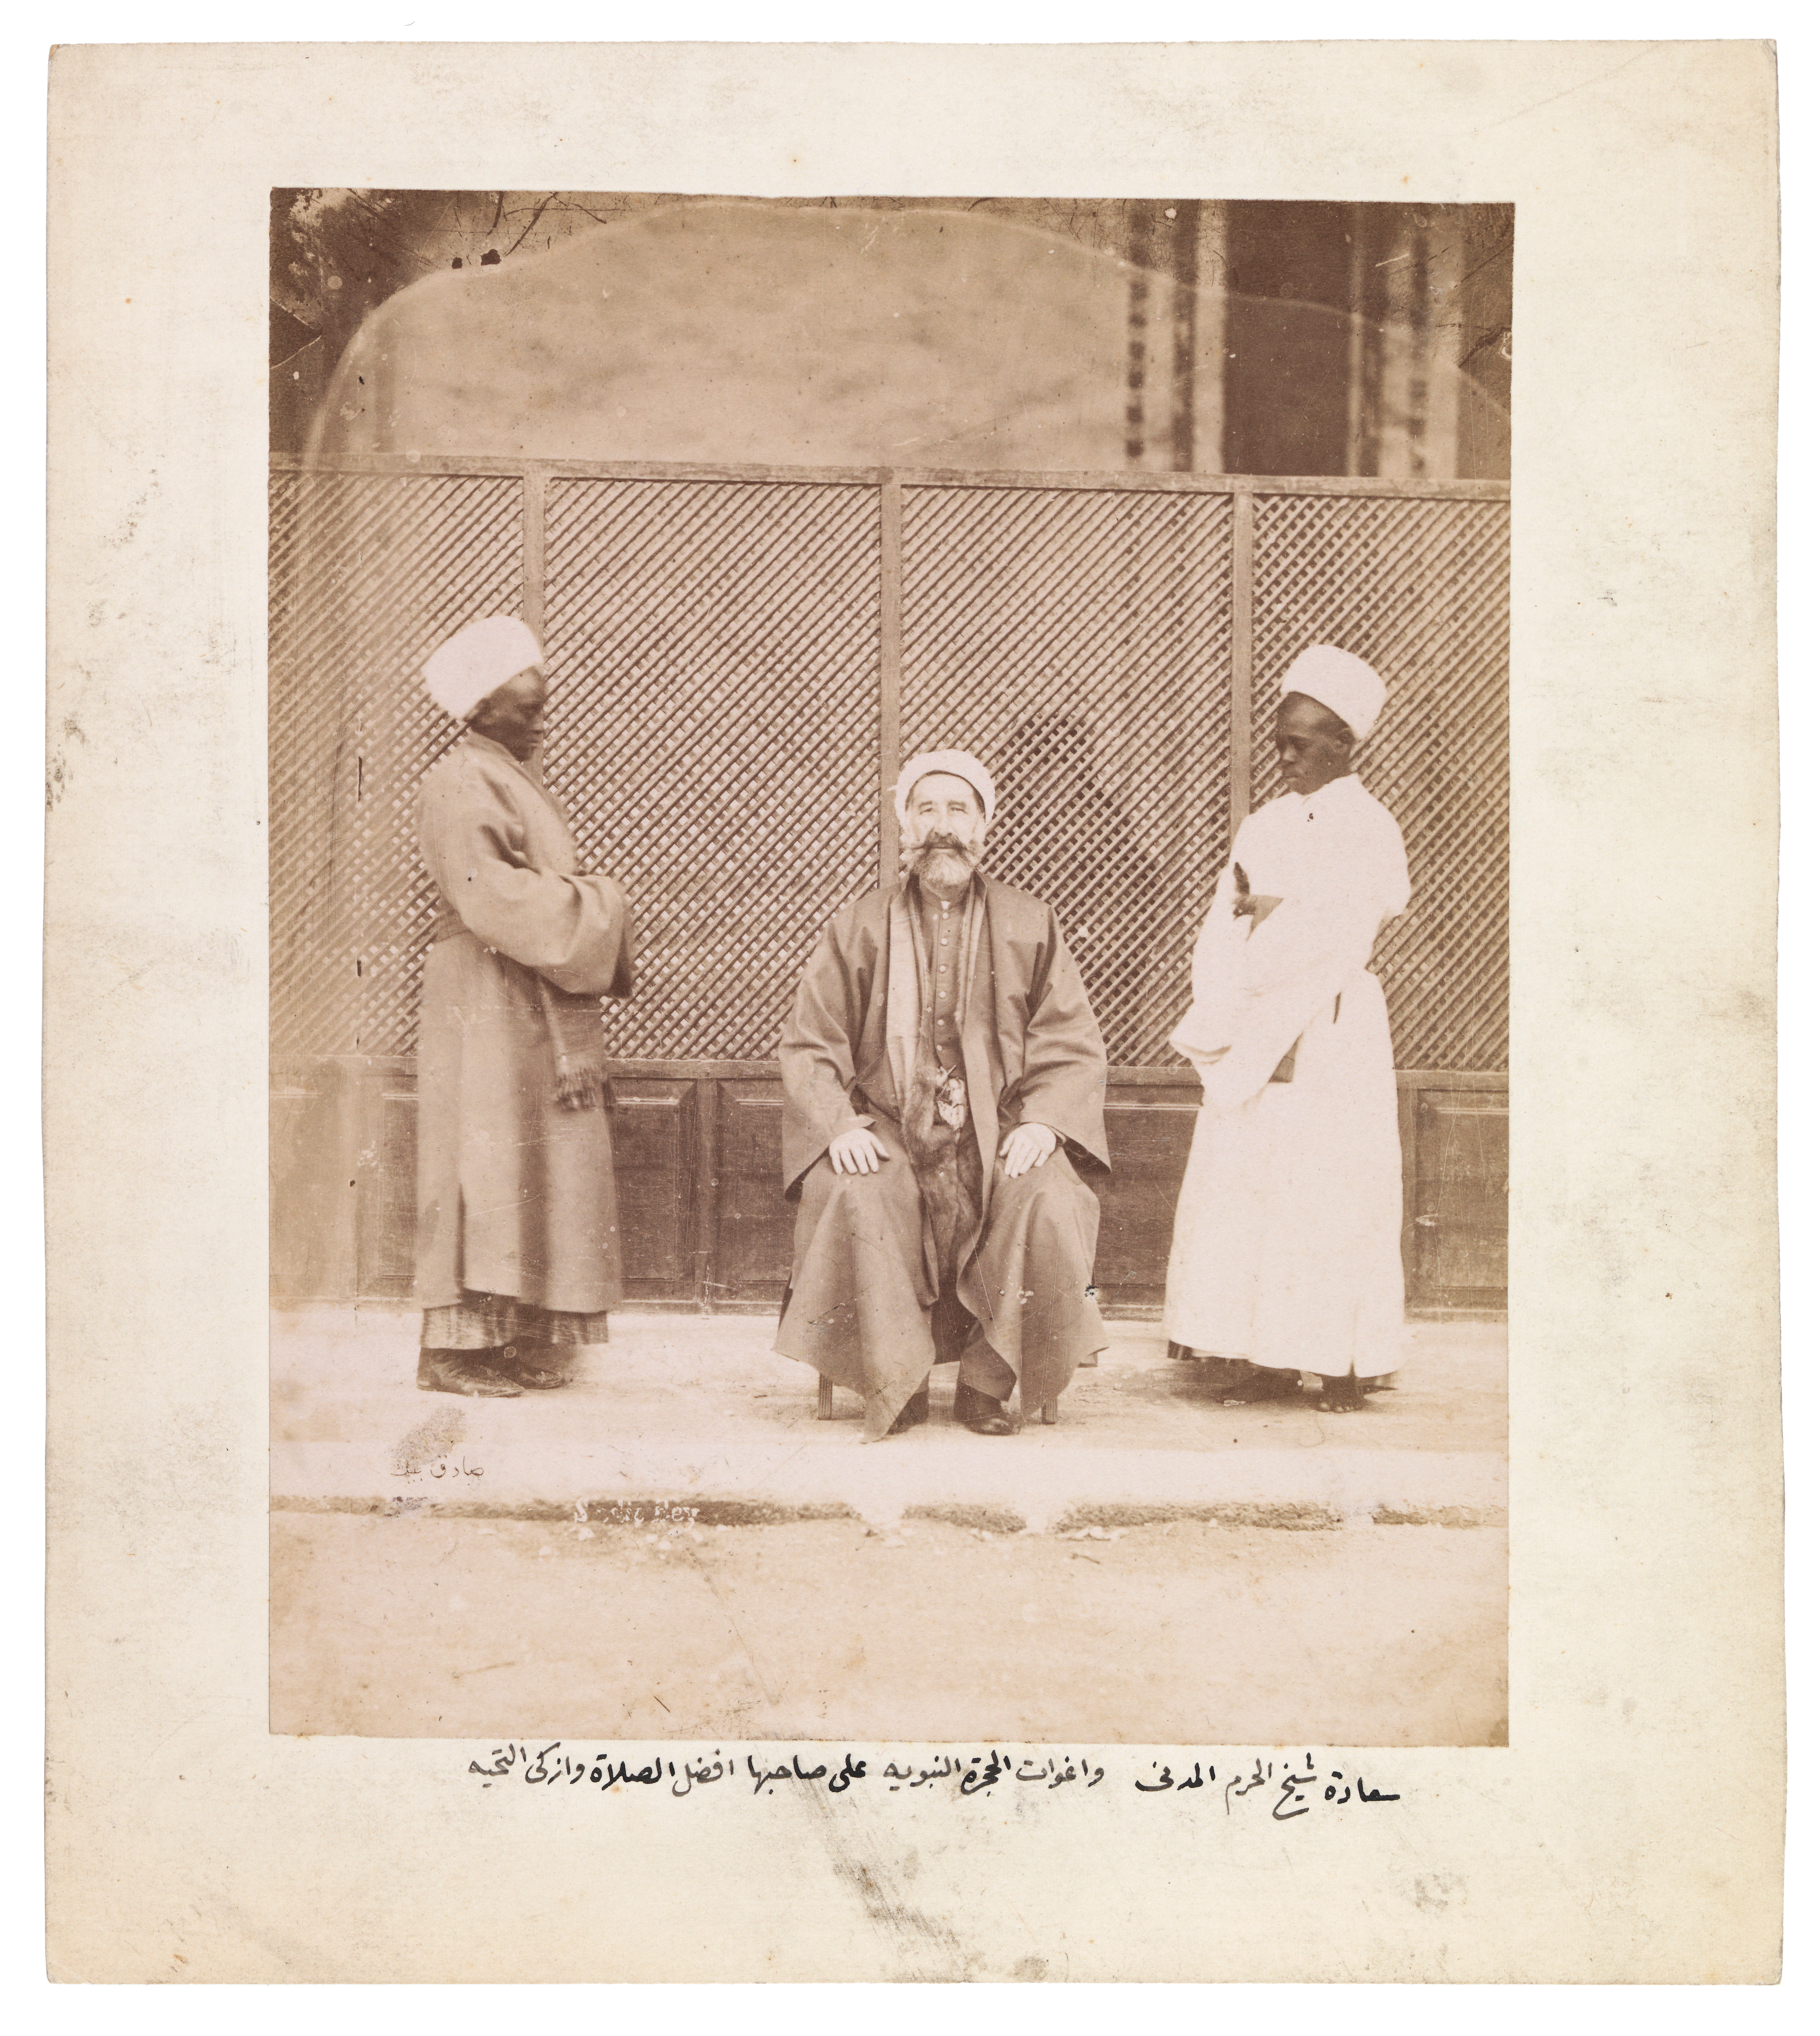 Shaykh of Medina and the aghawat of the Prophet's chamber